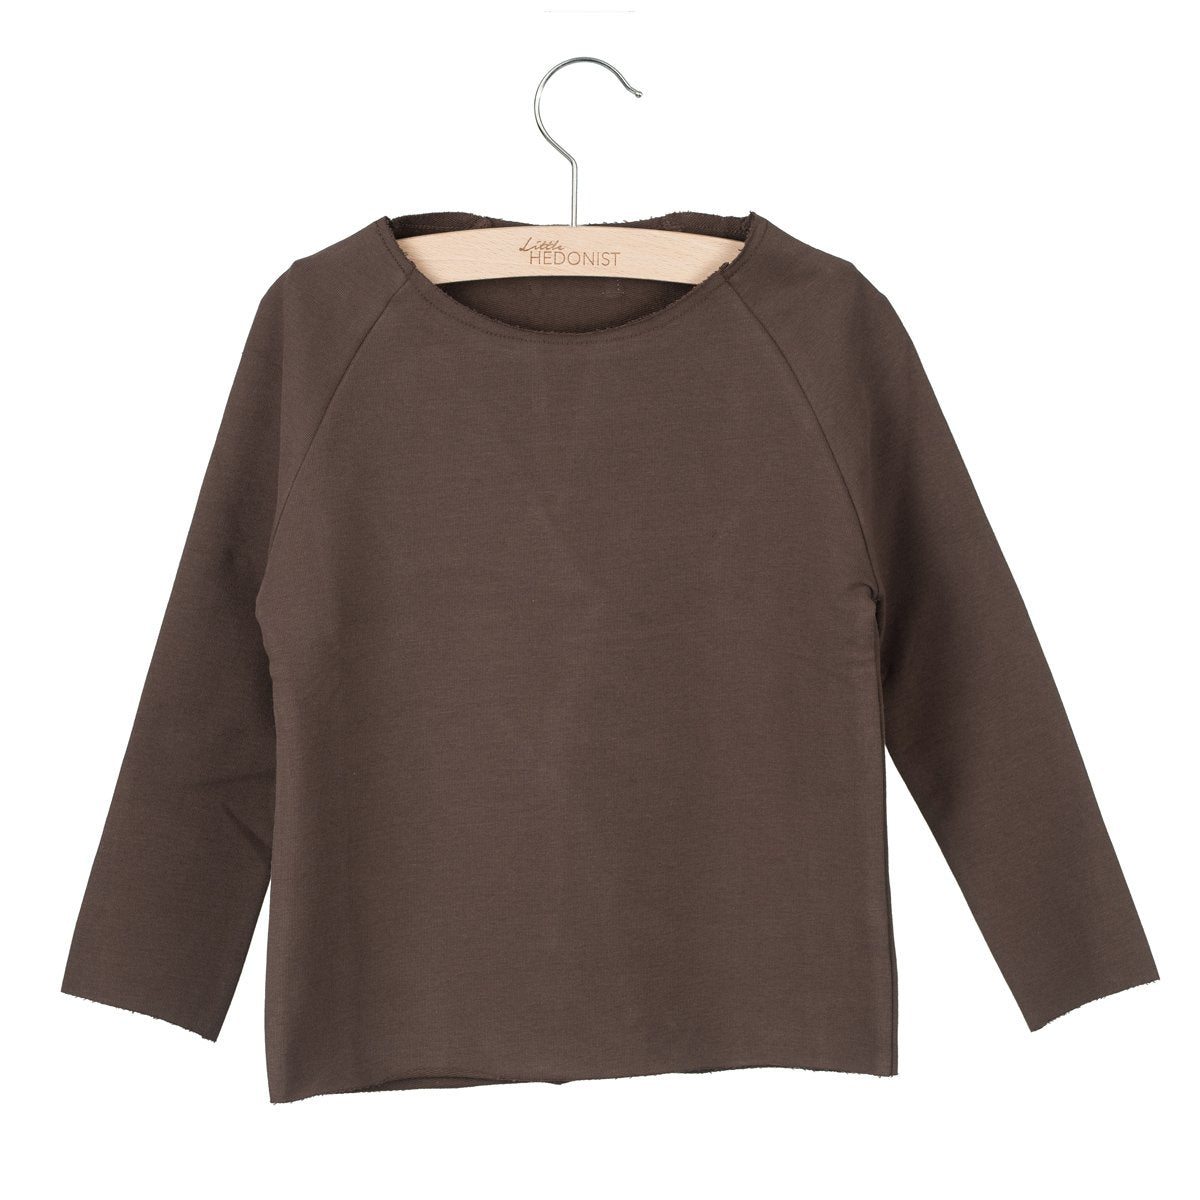 Sweater Jonathan Chestnut